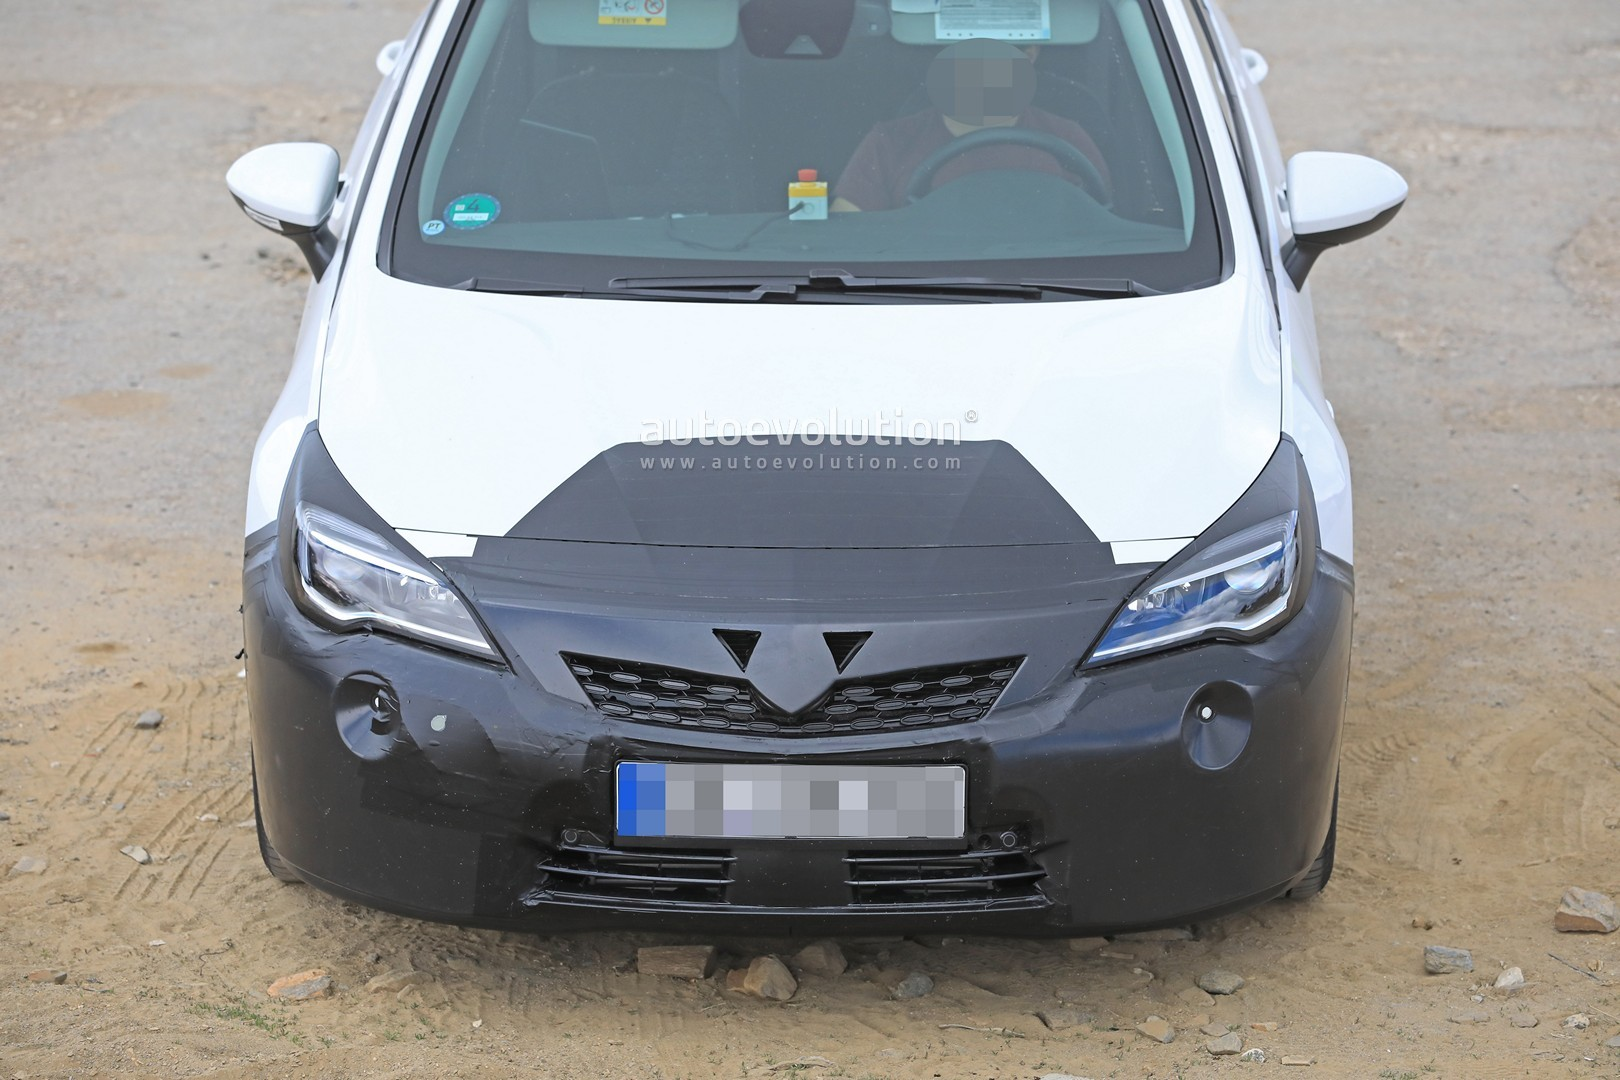 2019 Opel Astra Facelift Spied Doing Some Towing - autoevolution